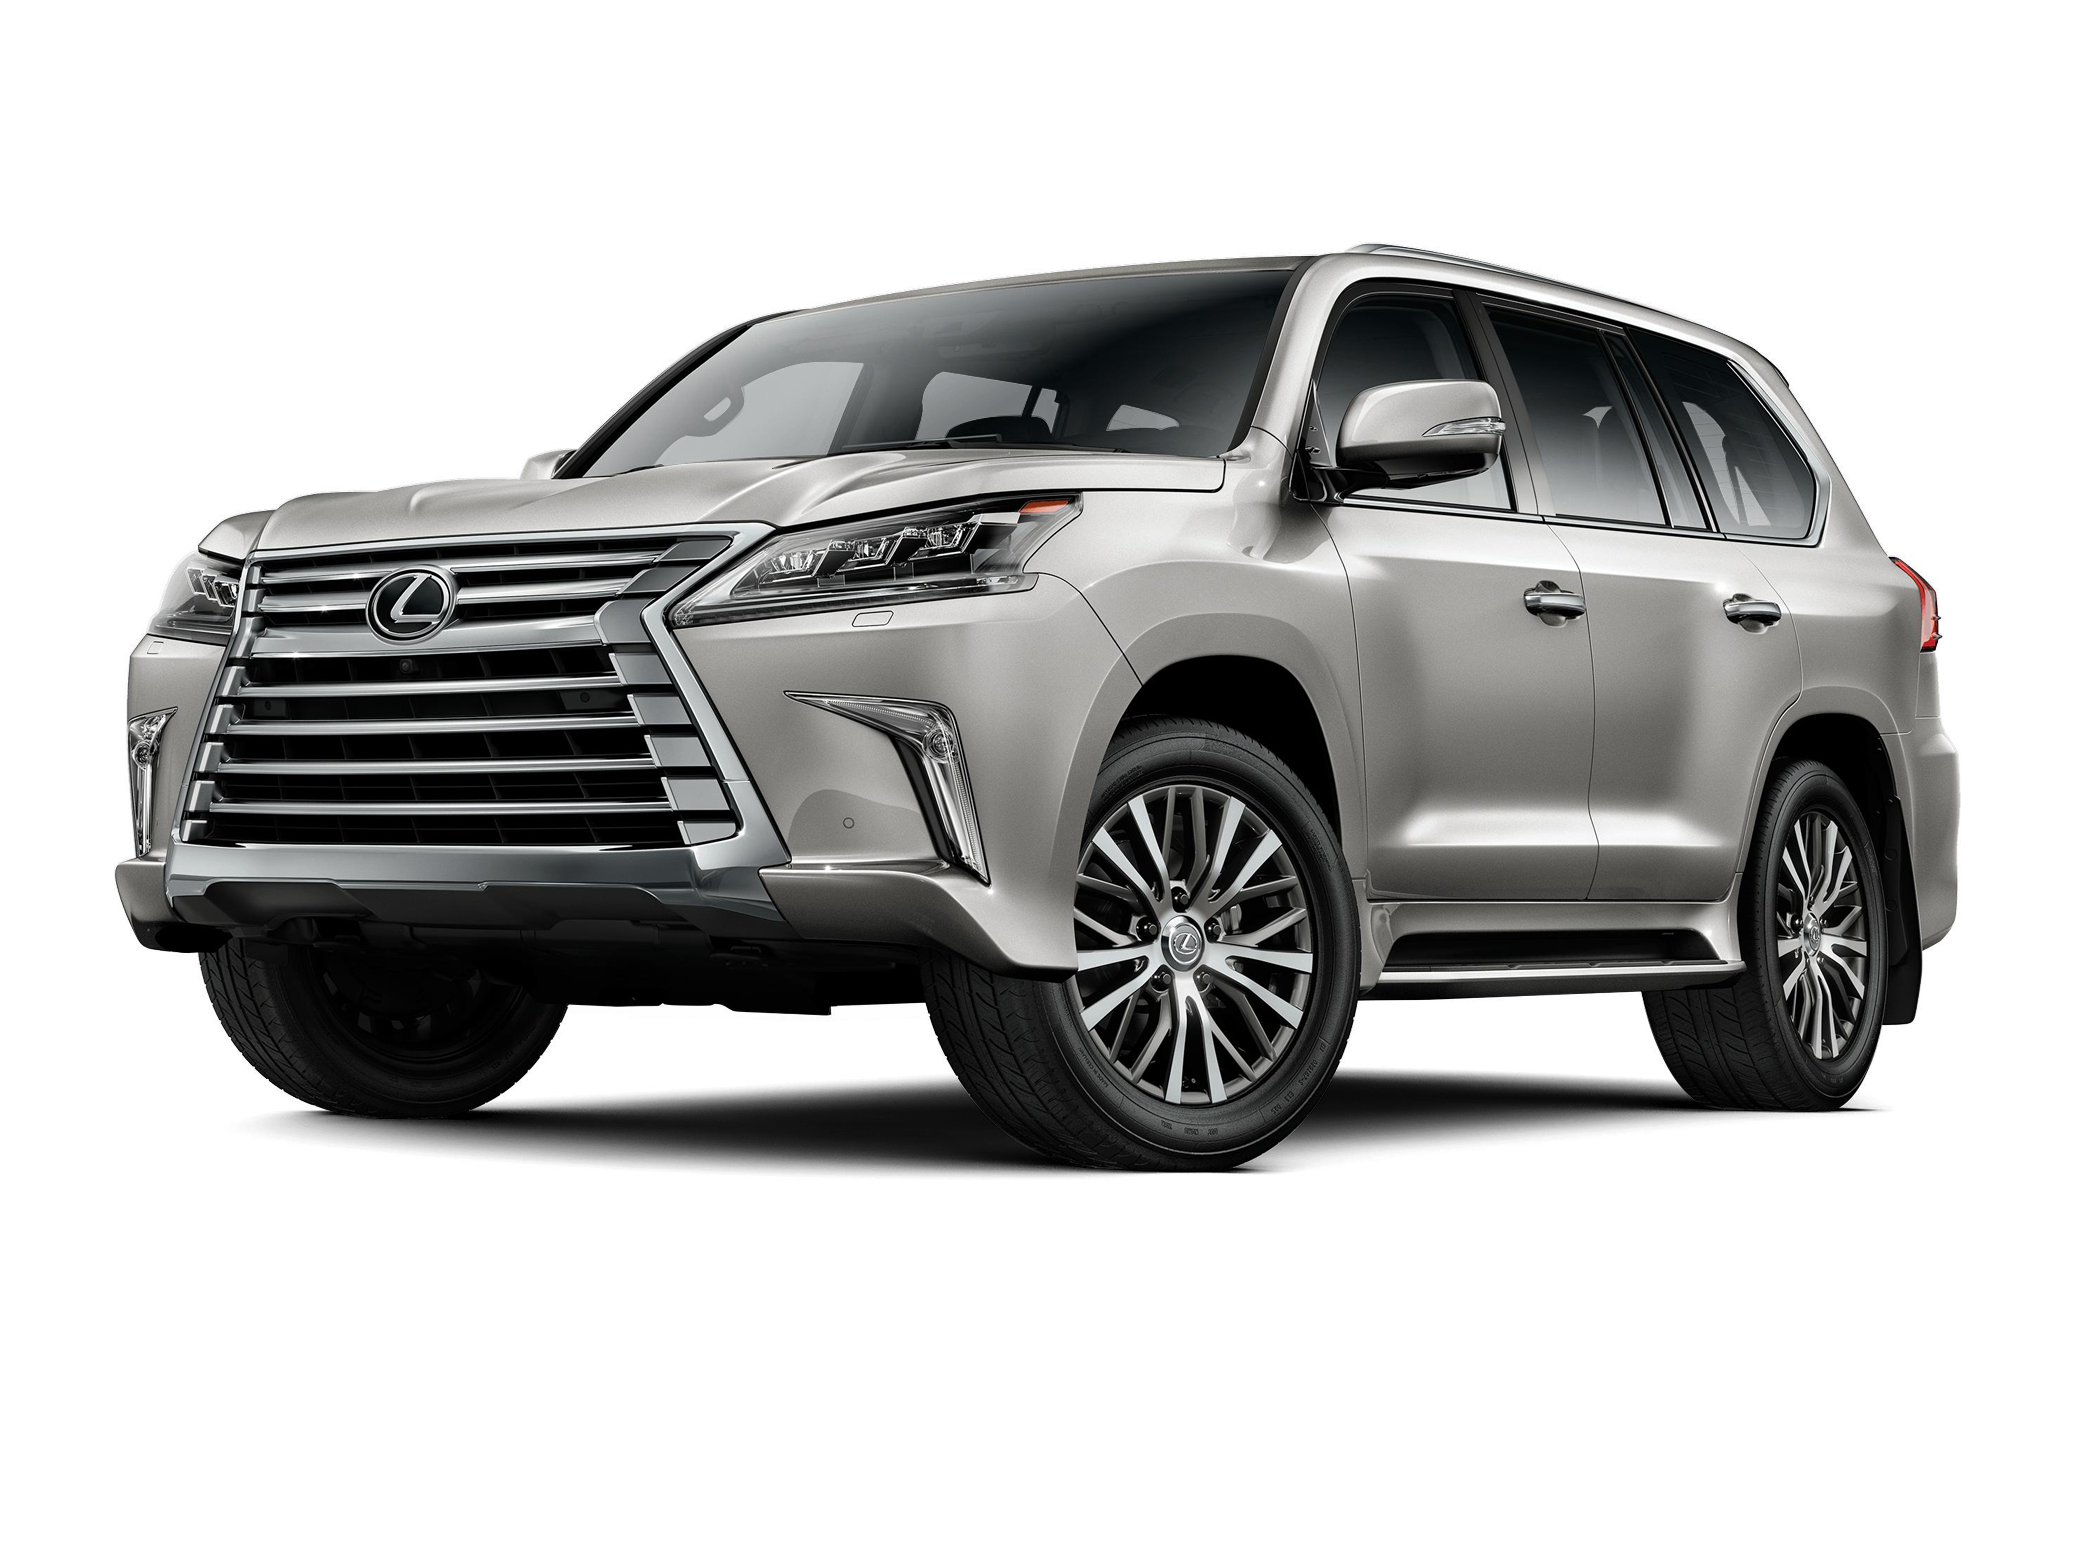 2019 Lexus Lx 570 Incentives Specials Offers In Riverside Ca